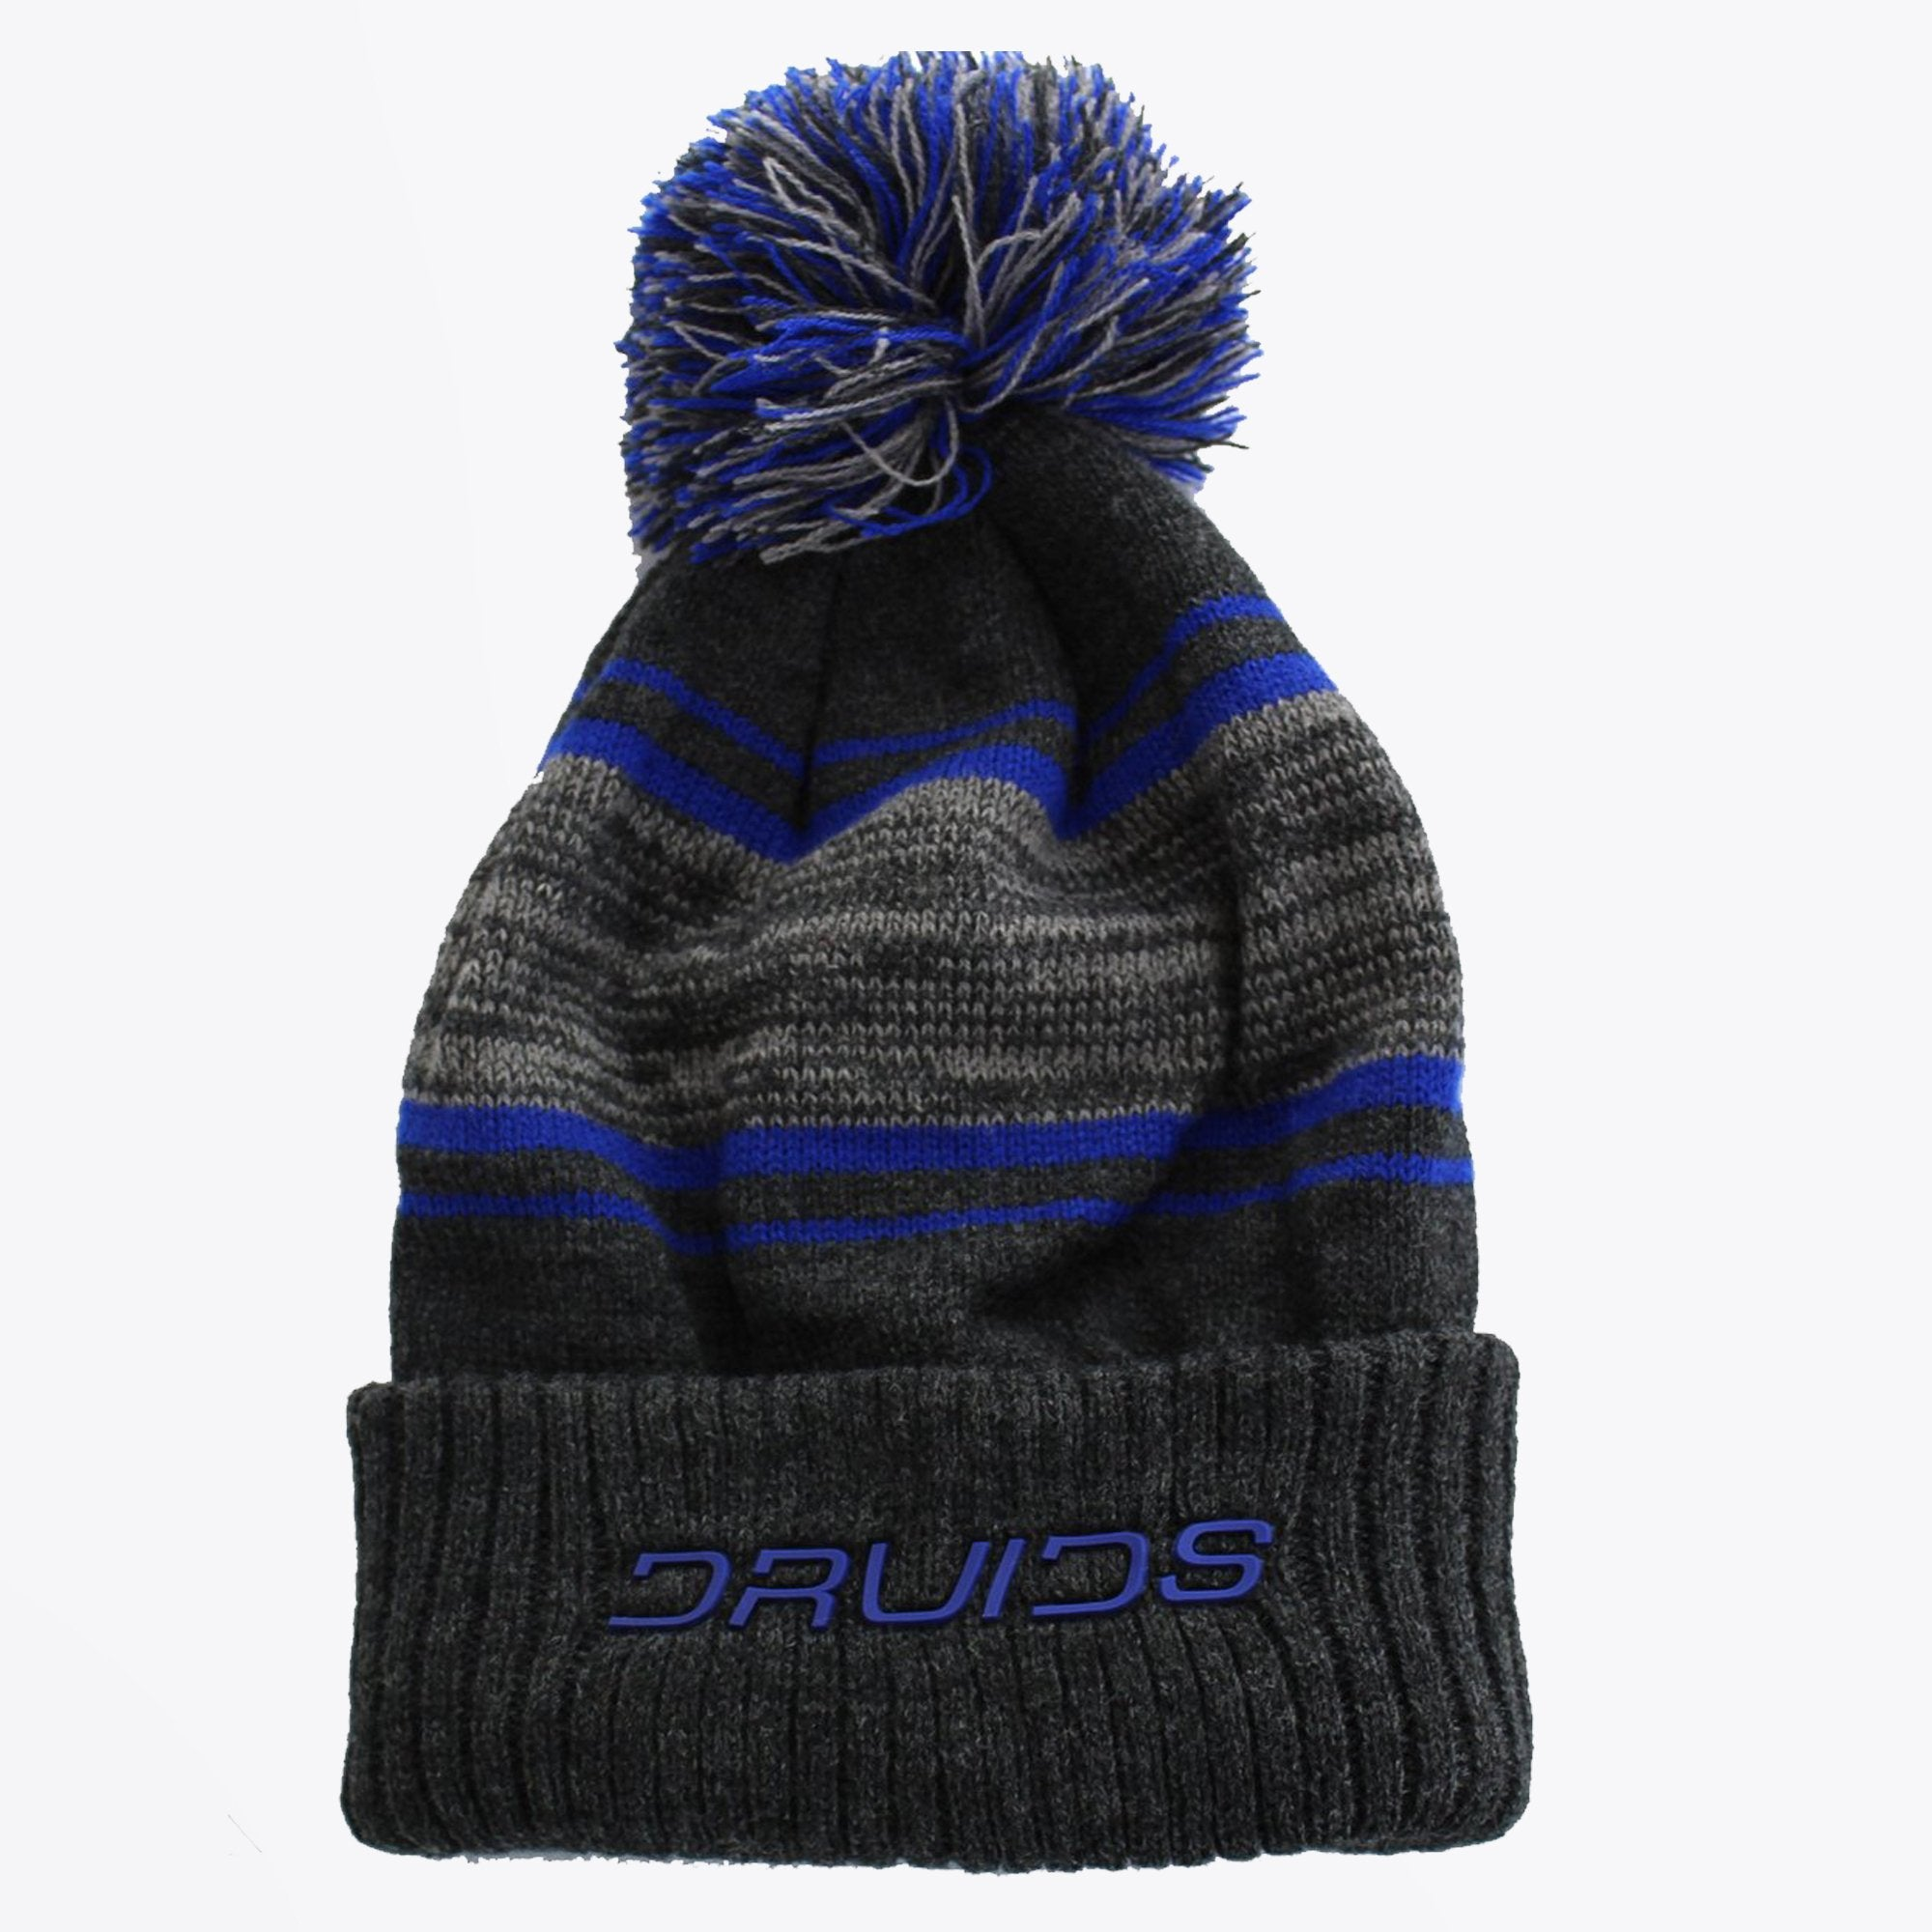 Druids Golf - Mens Striped Beanie Logo (Blue)